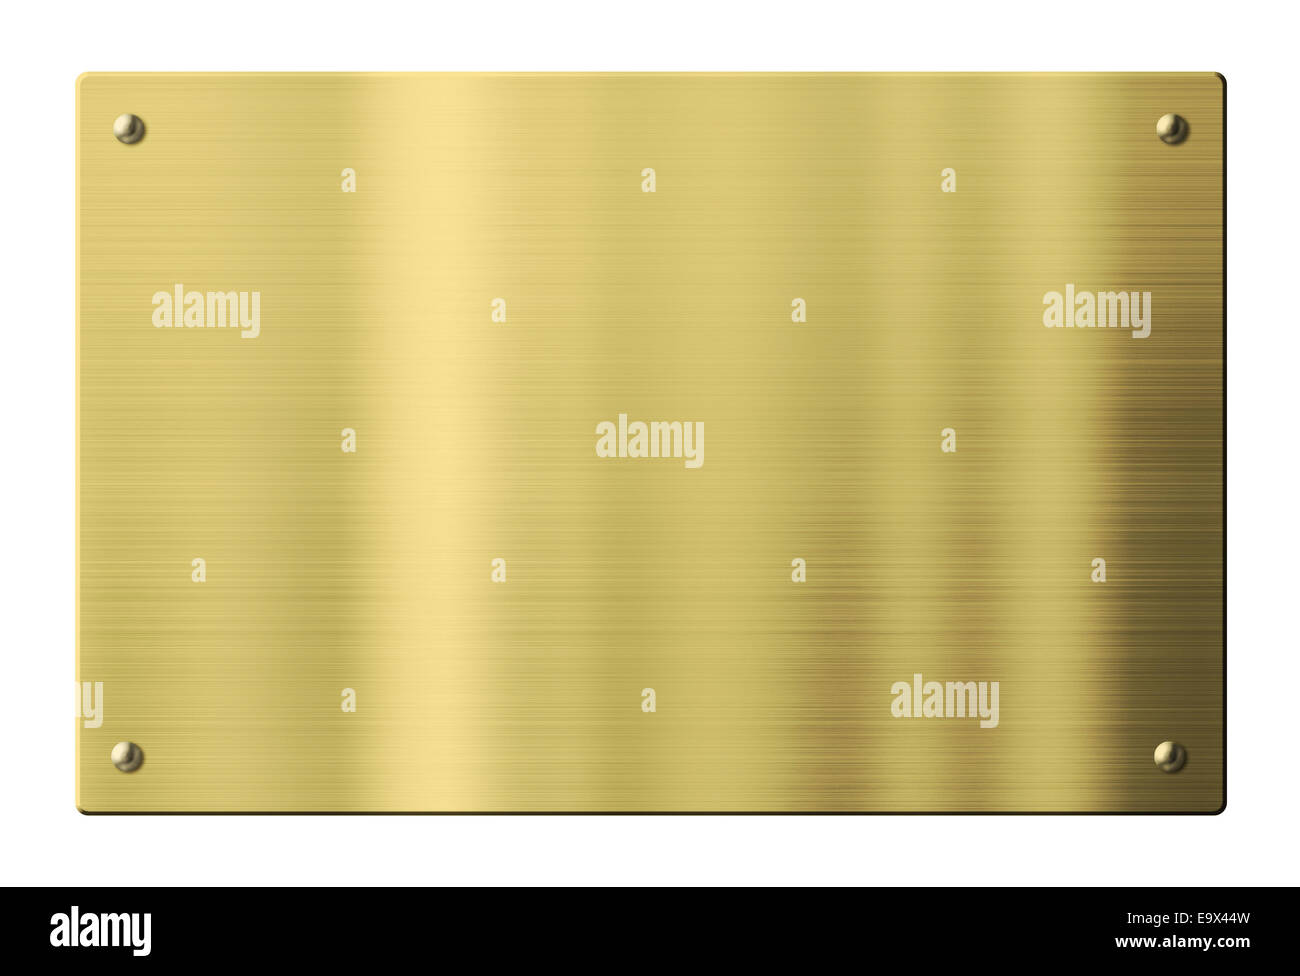 Brass or gold metal plate isolated with clipping path included - Stock Image